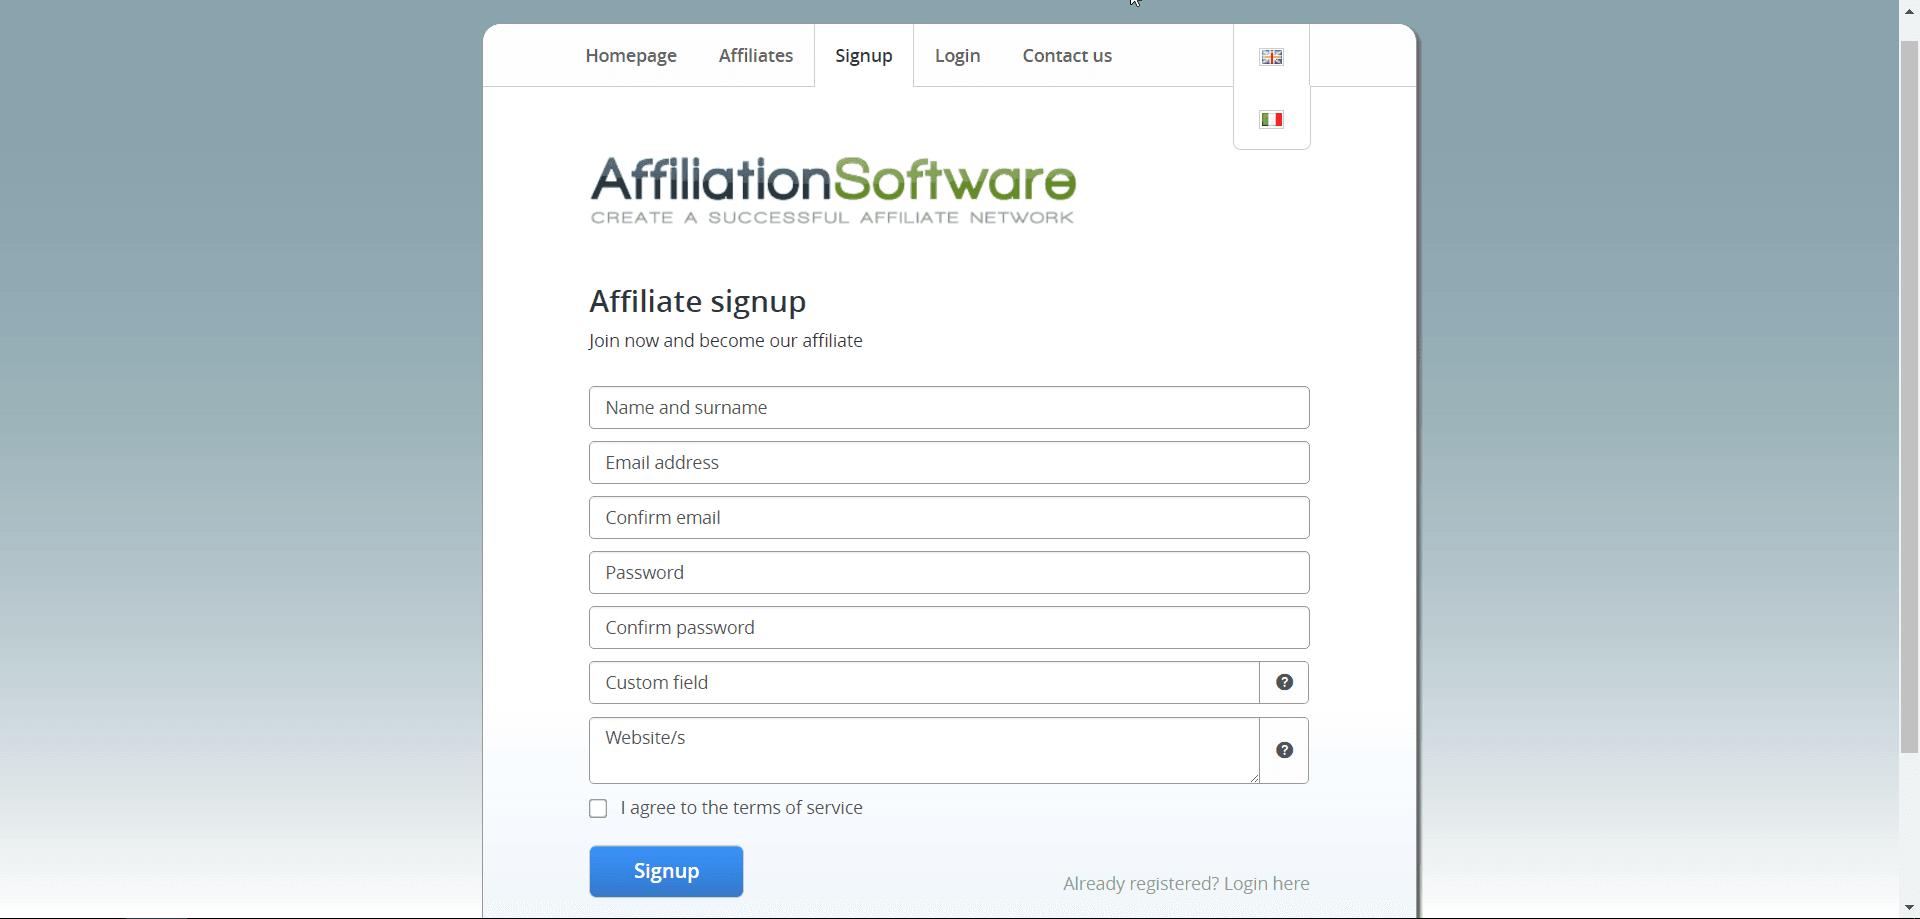 Signup page of AffiliationSoftware